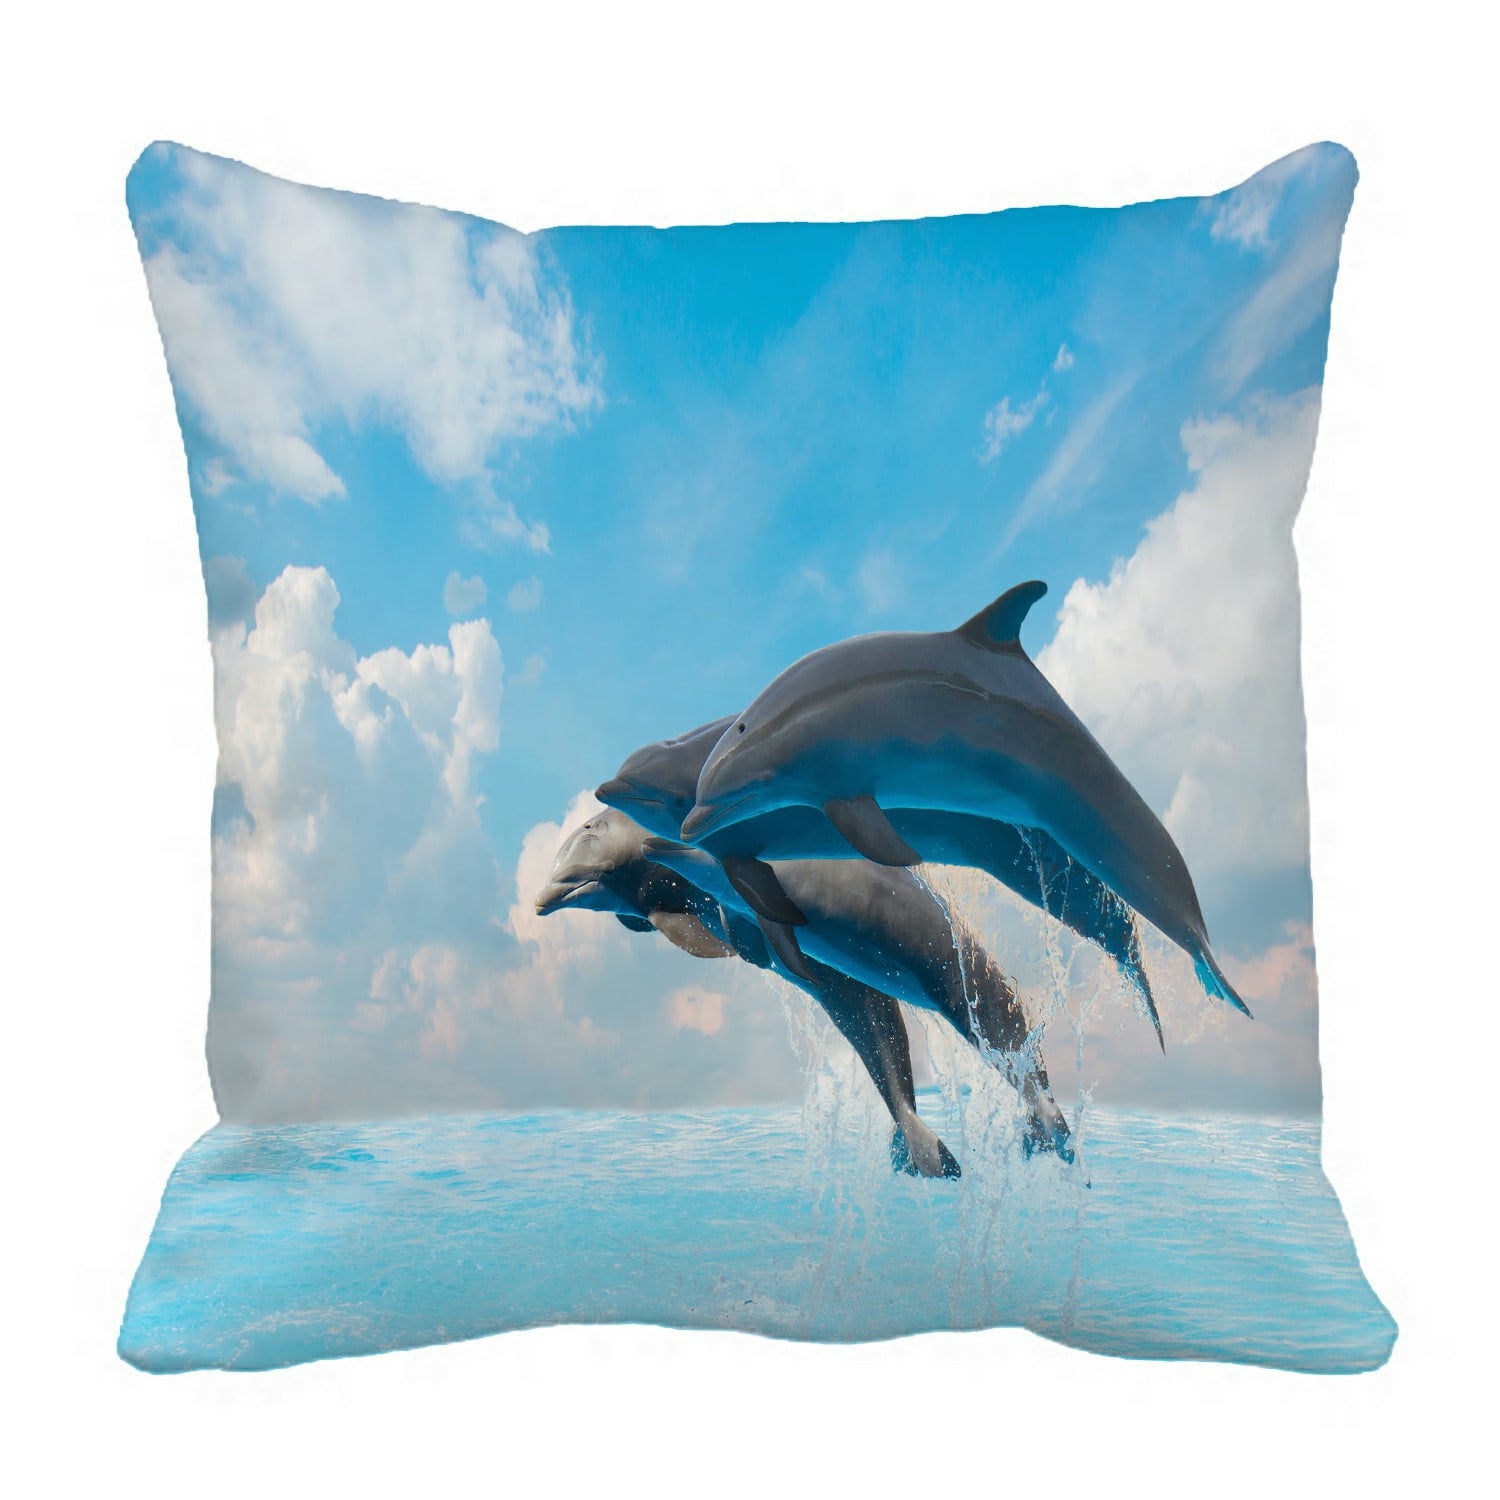 Eczjnt Group Of Jumping Dolphins Beautiful Seascape Pillow Case Pillow Cover Cushion Cover 16x16 Inch Walmart Com Walmart Com